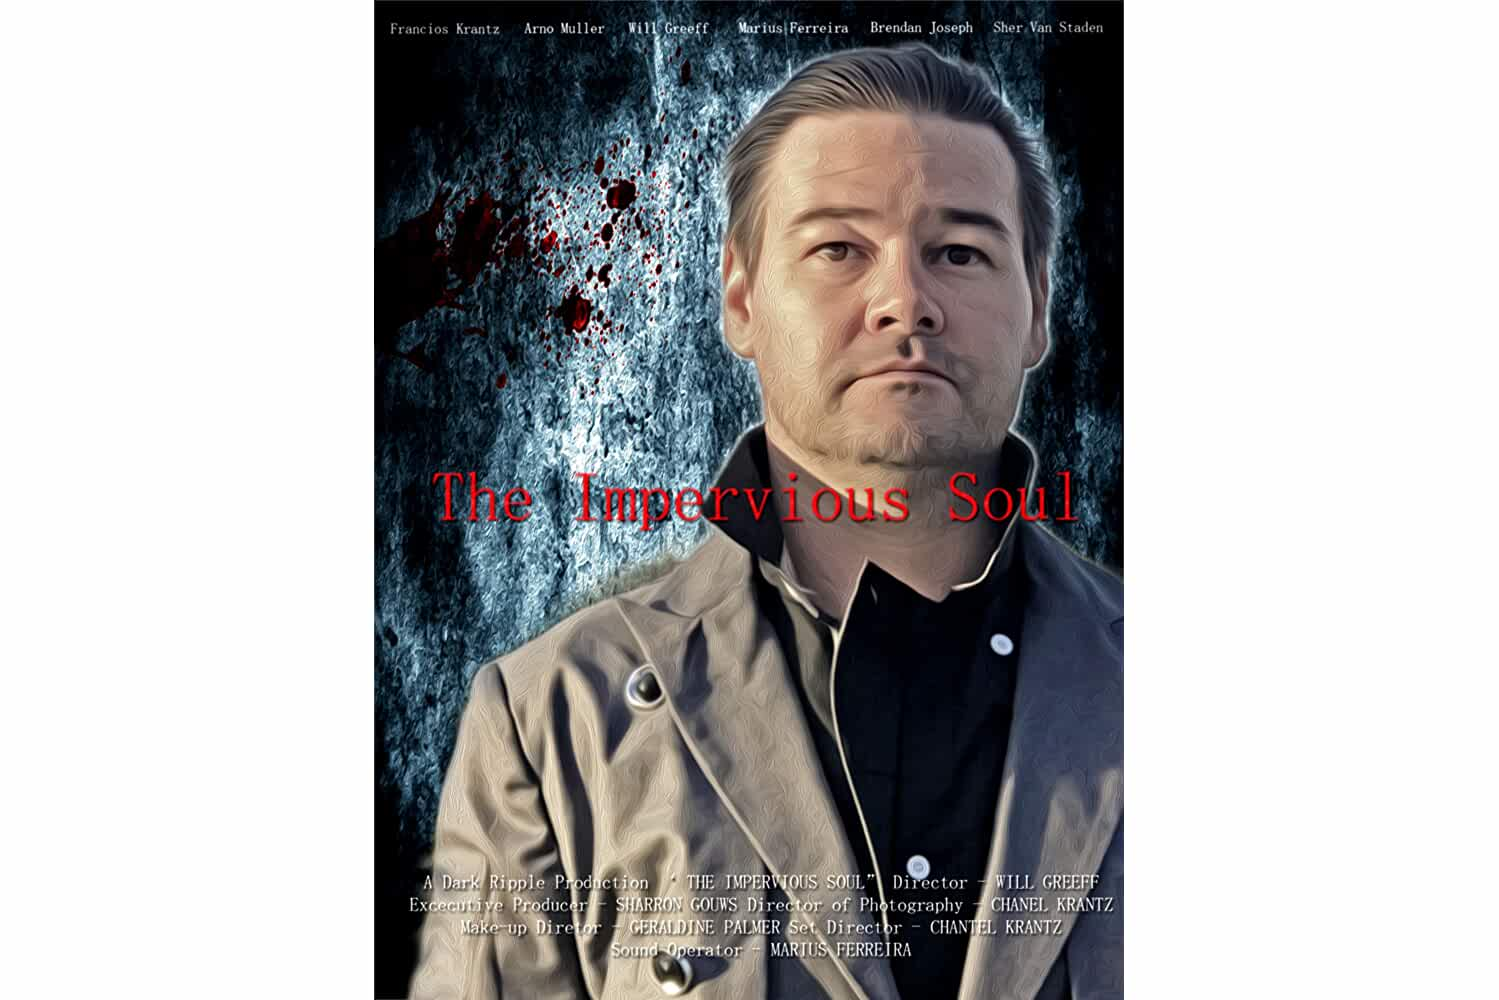 The Impervious Soul (2018)